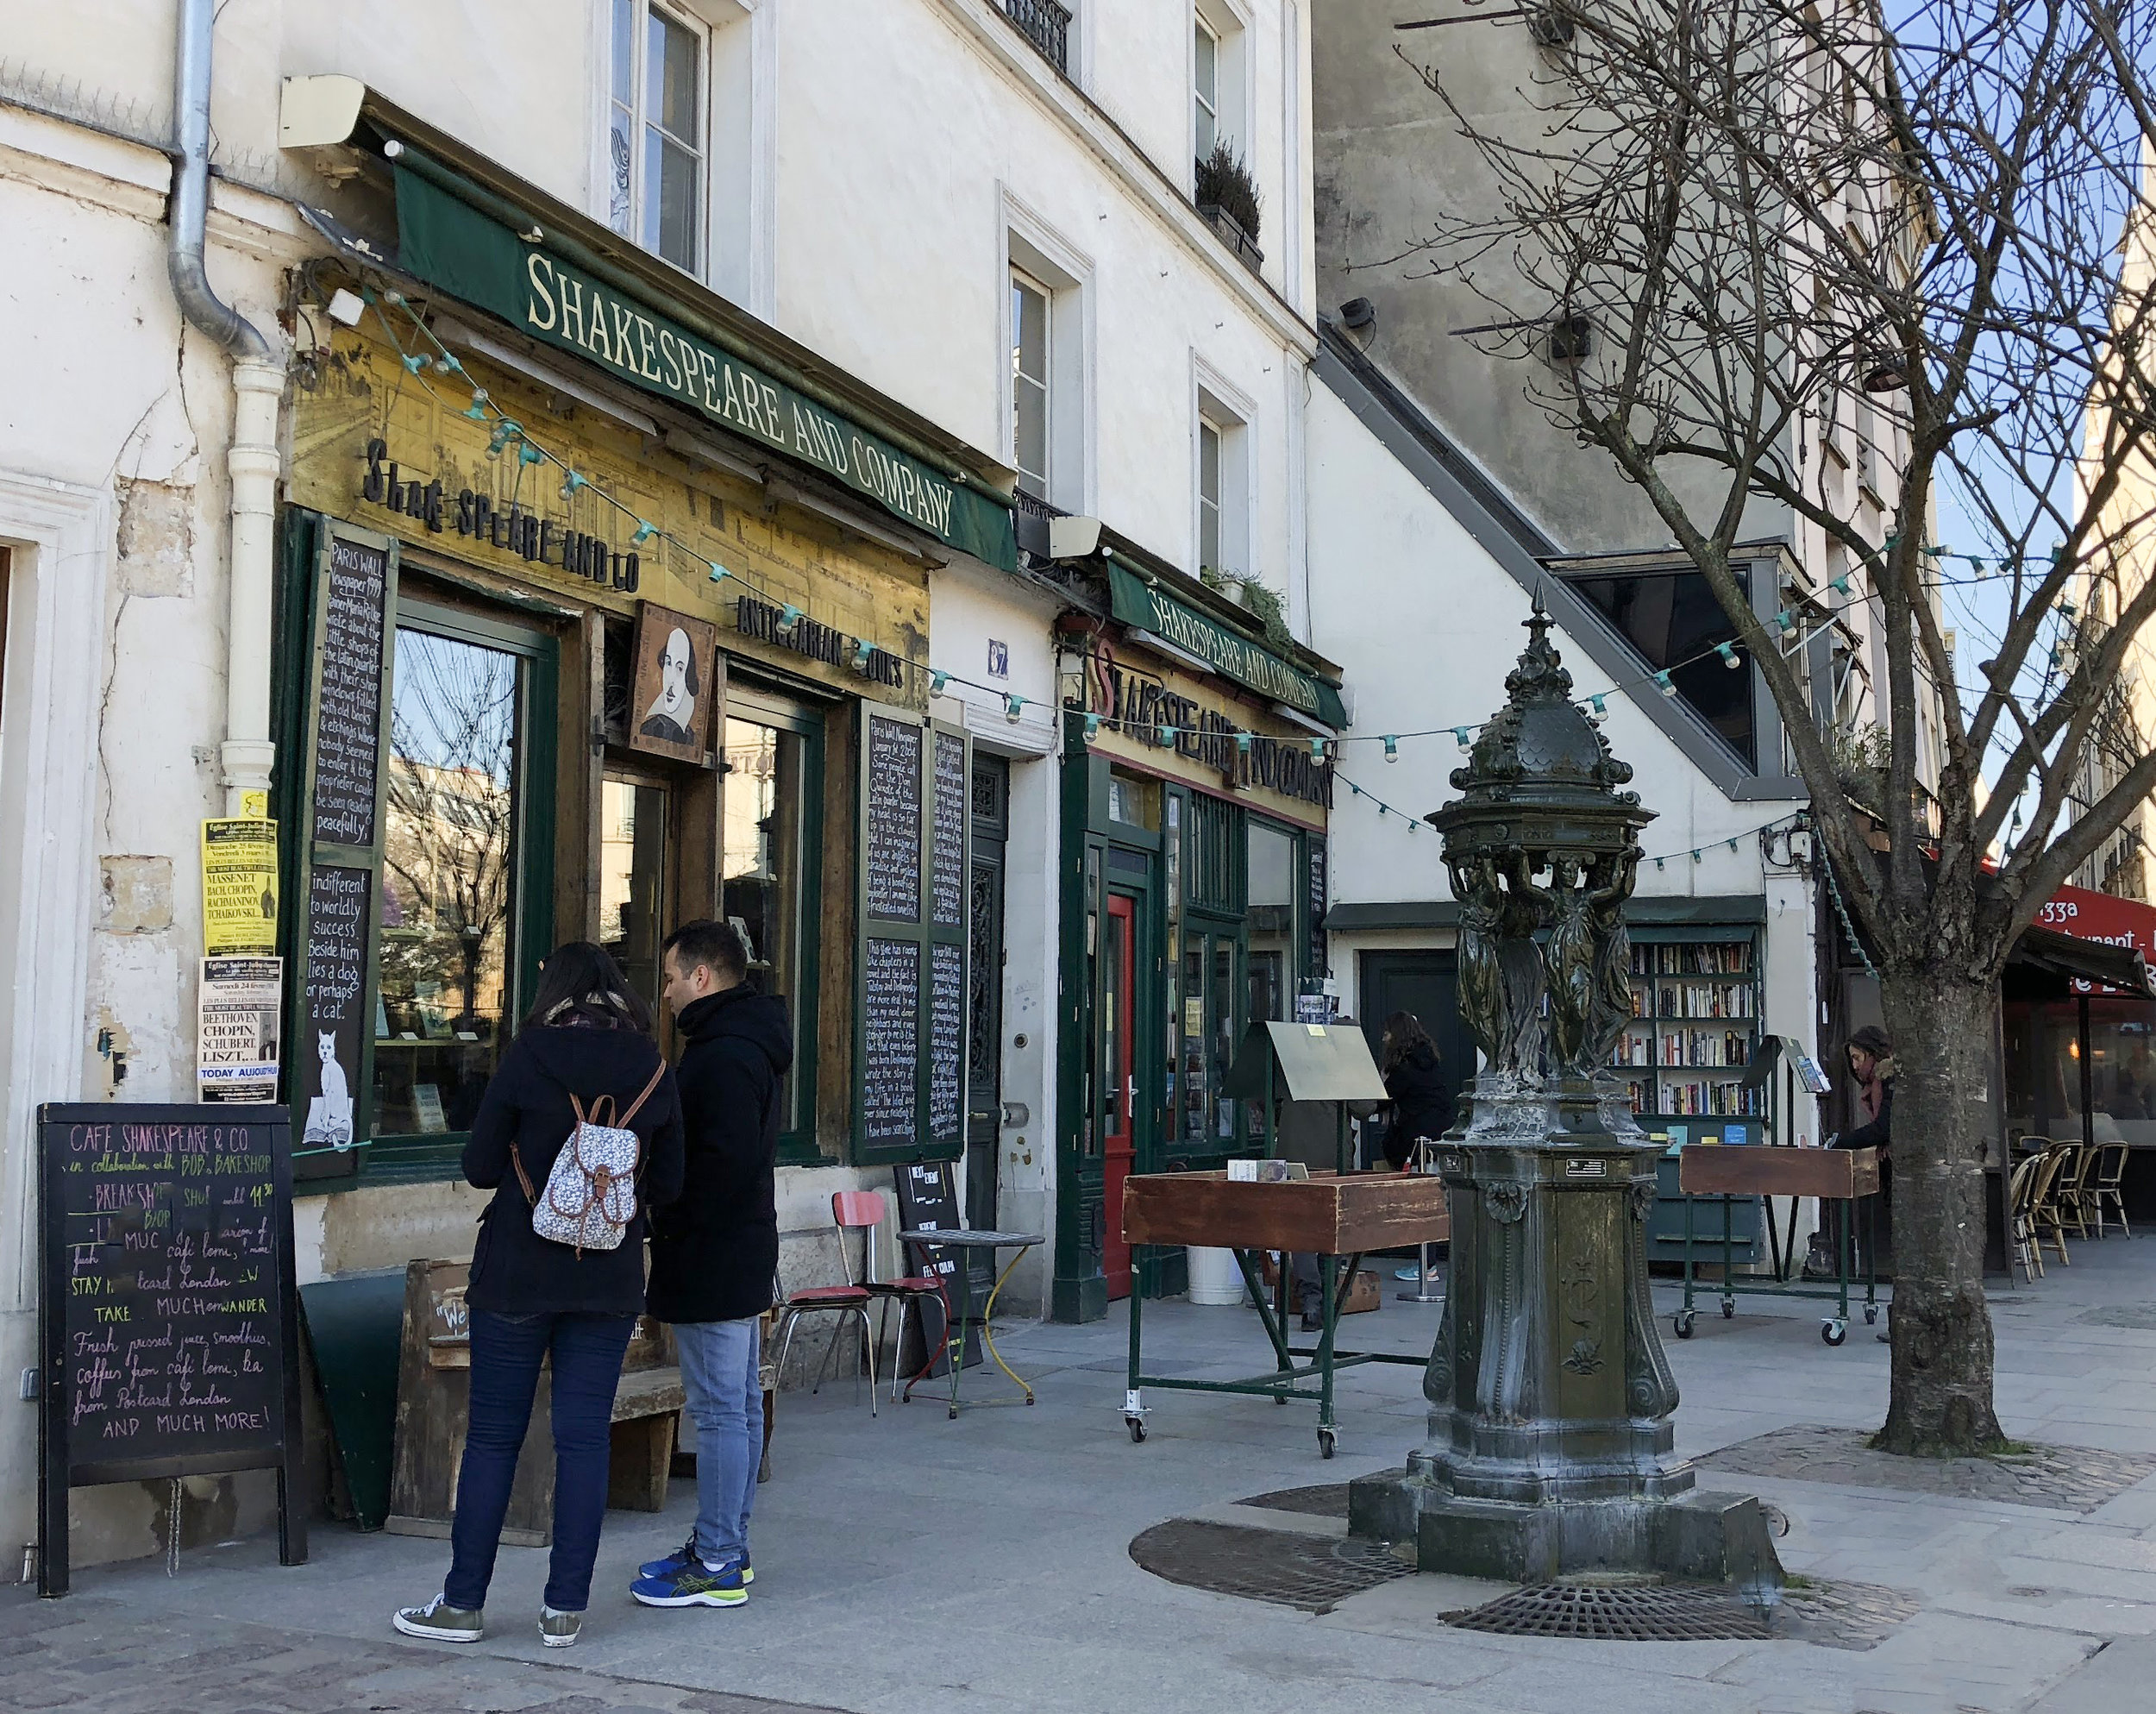 Wallace Fountain in front of Shakespeare and Company